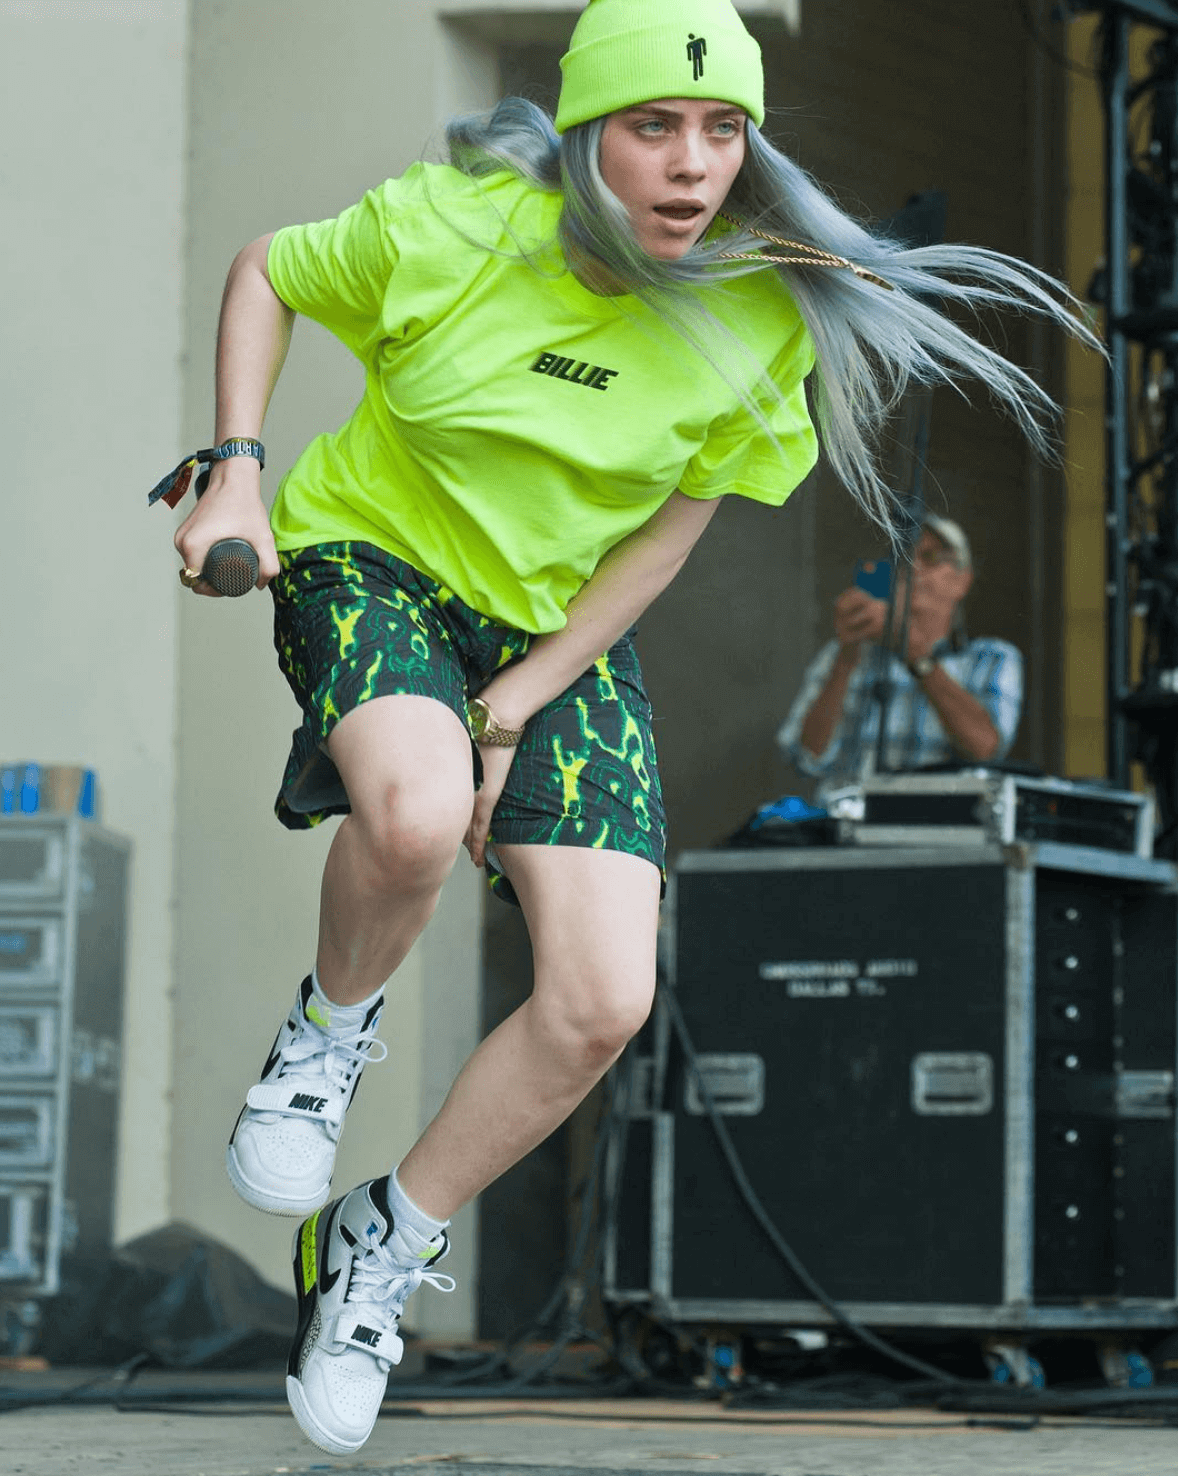 Billie Eilish in the Air Jordan Legacy 312